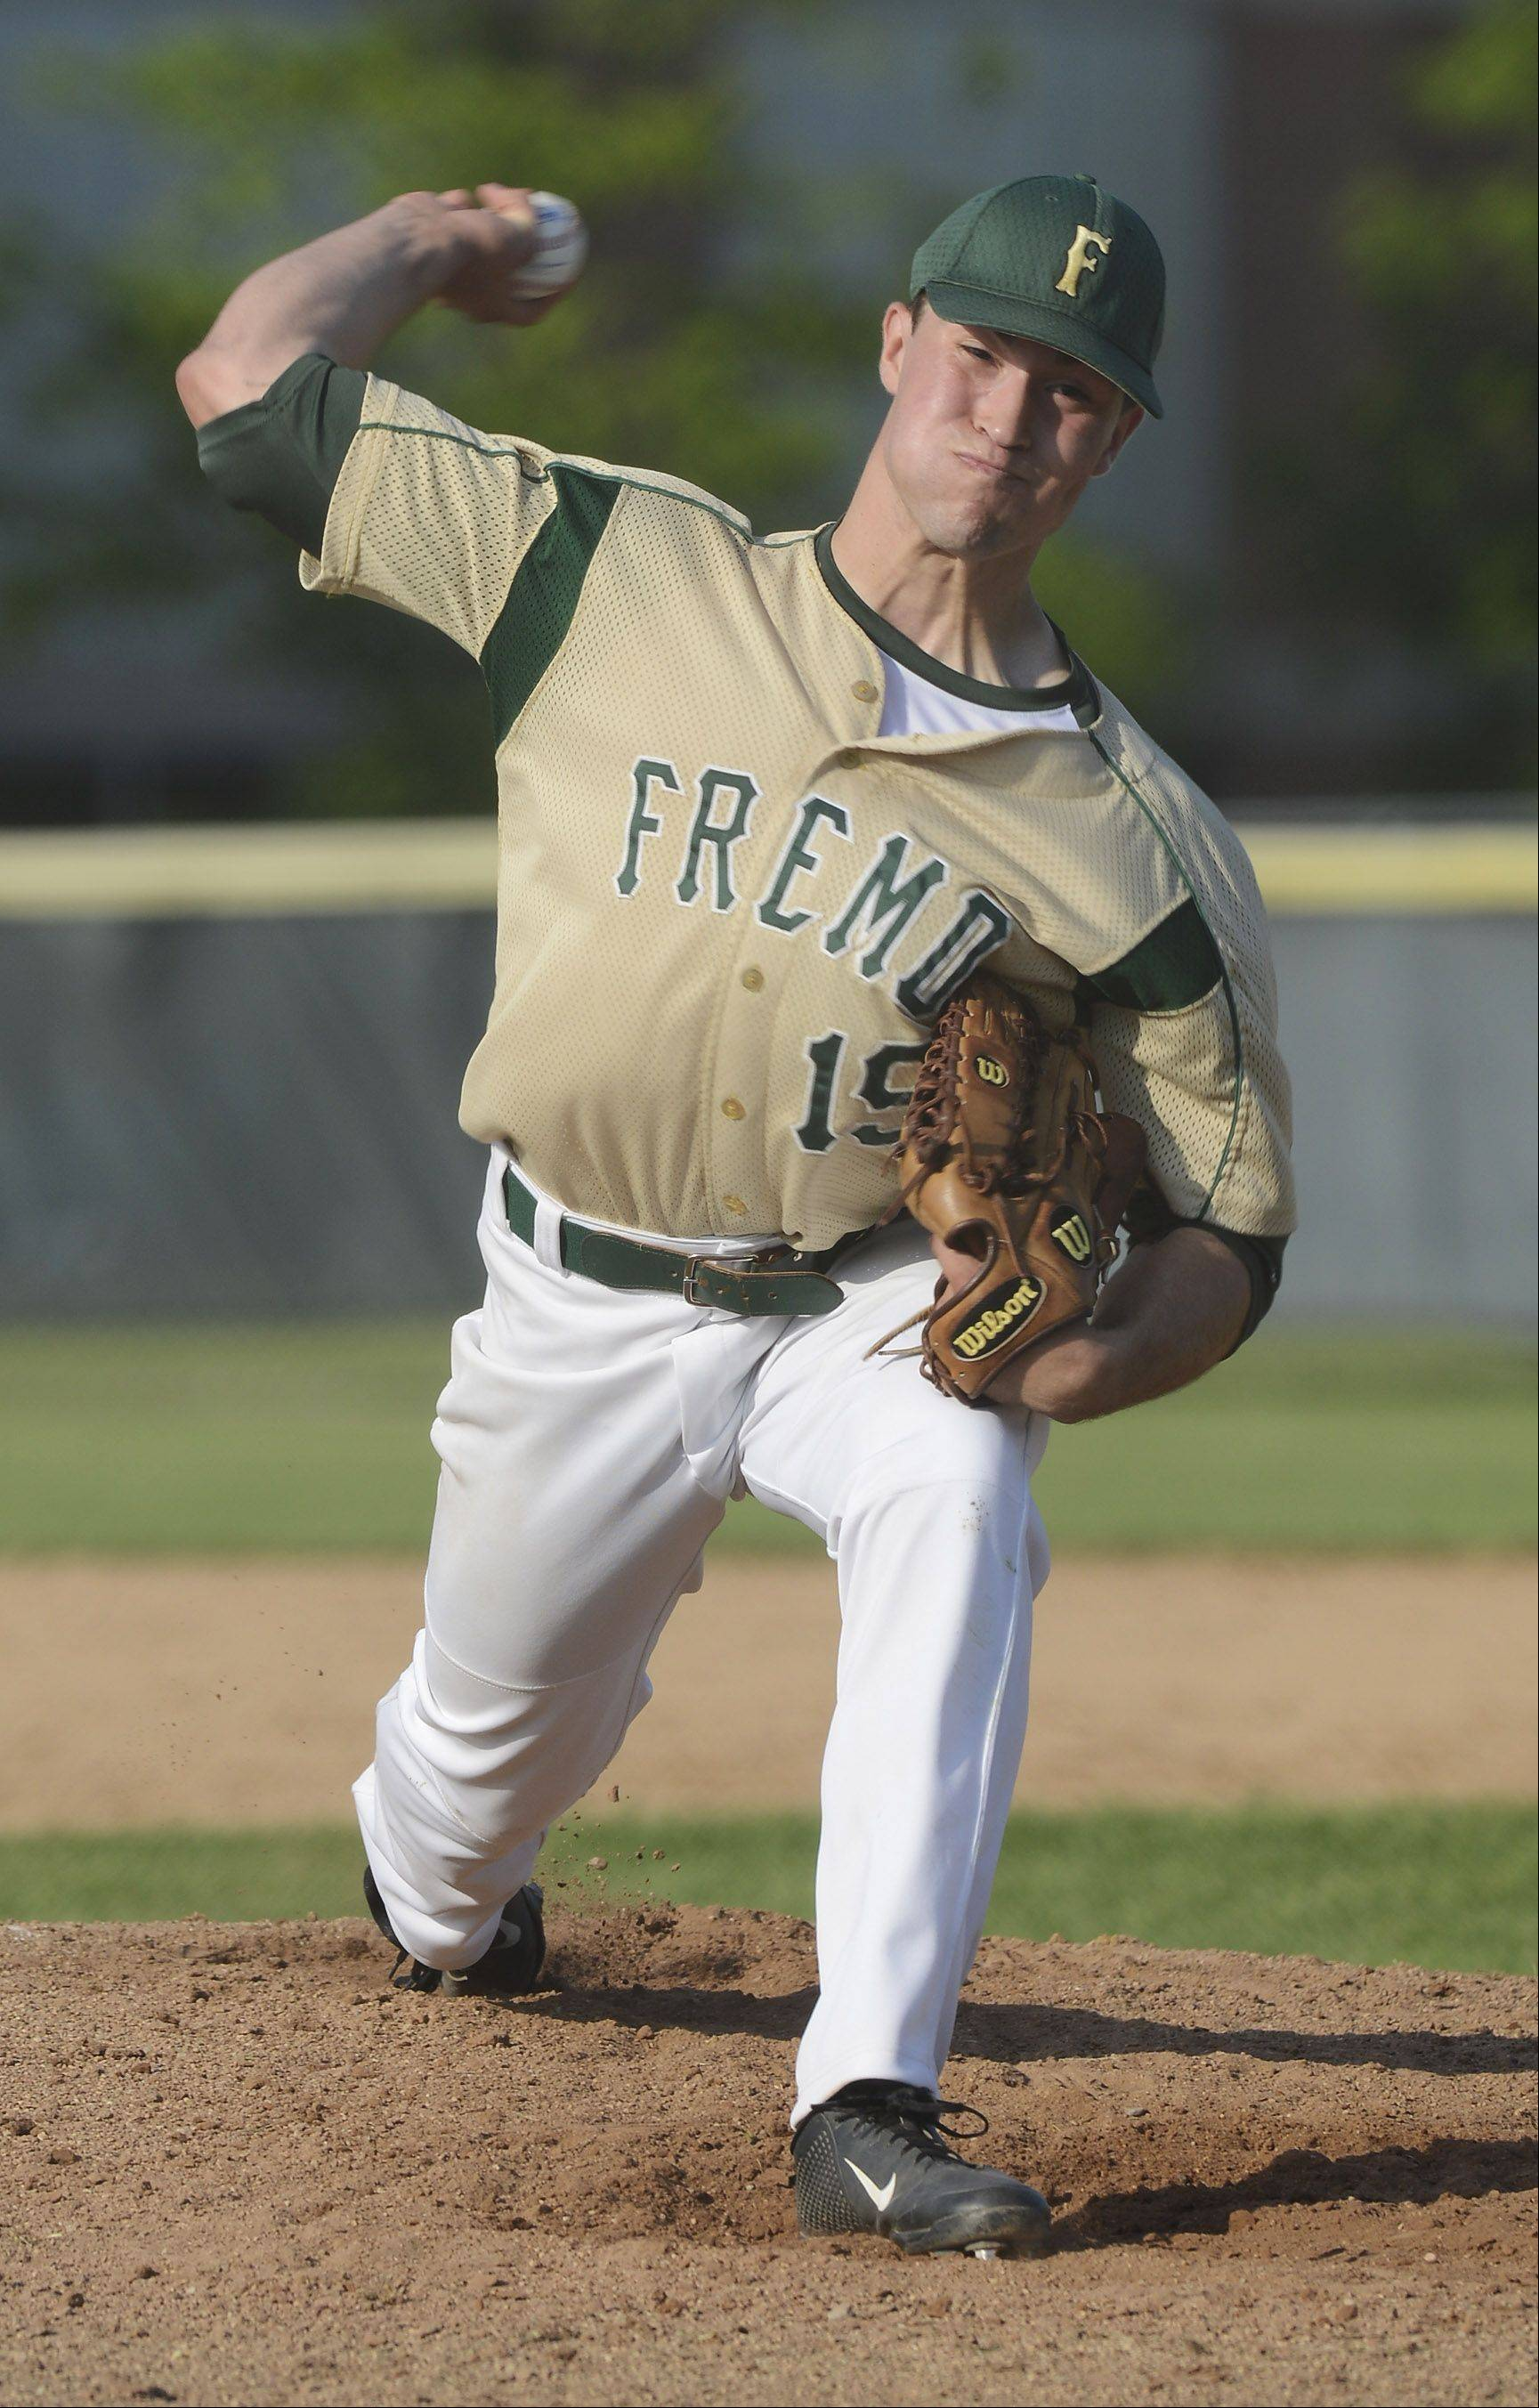 Fremd pitcher Jon Escobar delivers against Libertyville during the Glenbrook North sectional semifinal Wednesday.